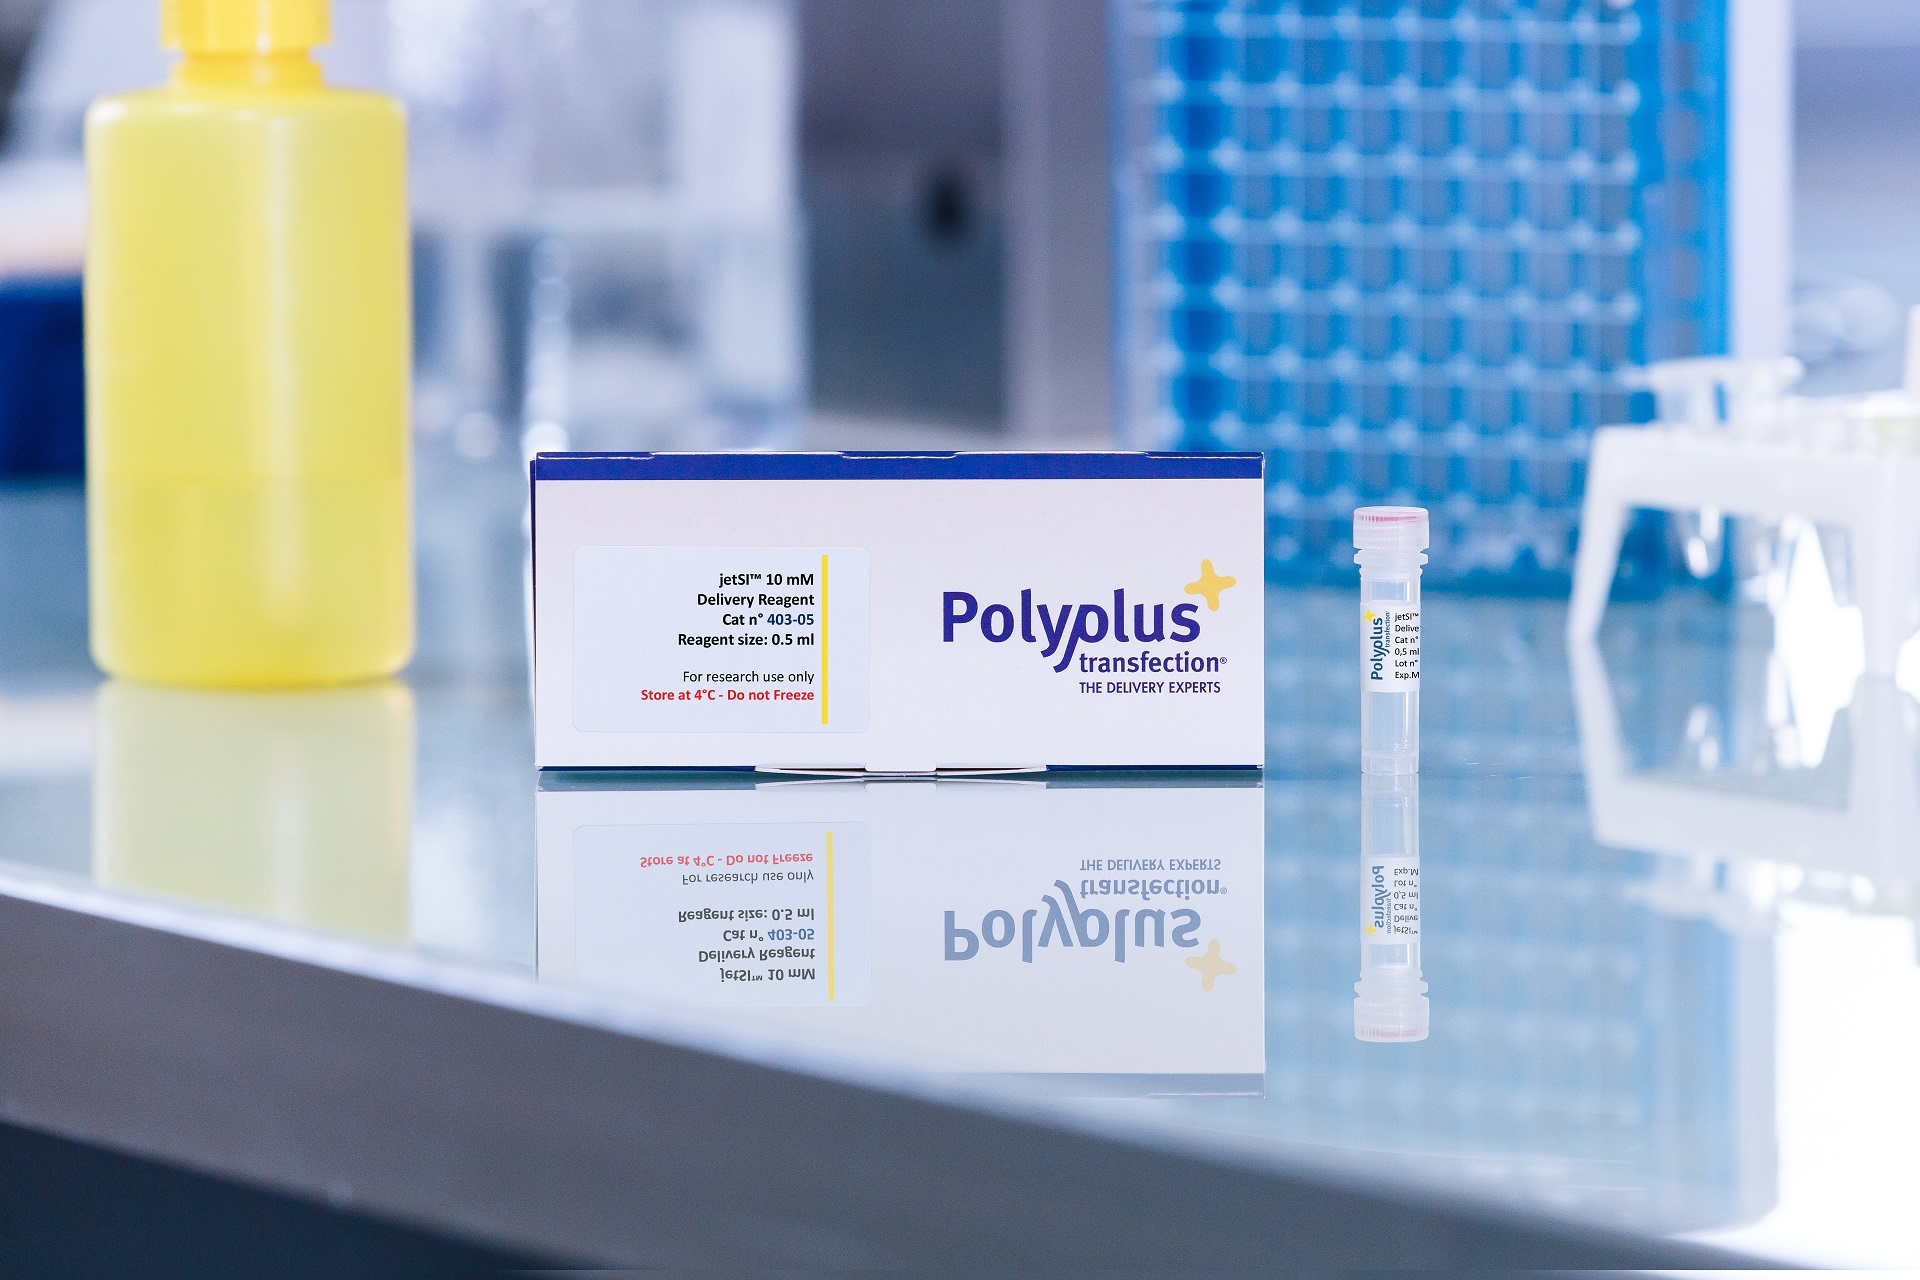 jetSI 10 mM packaging - Polyplus-transfection